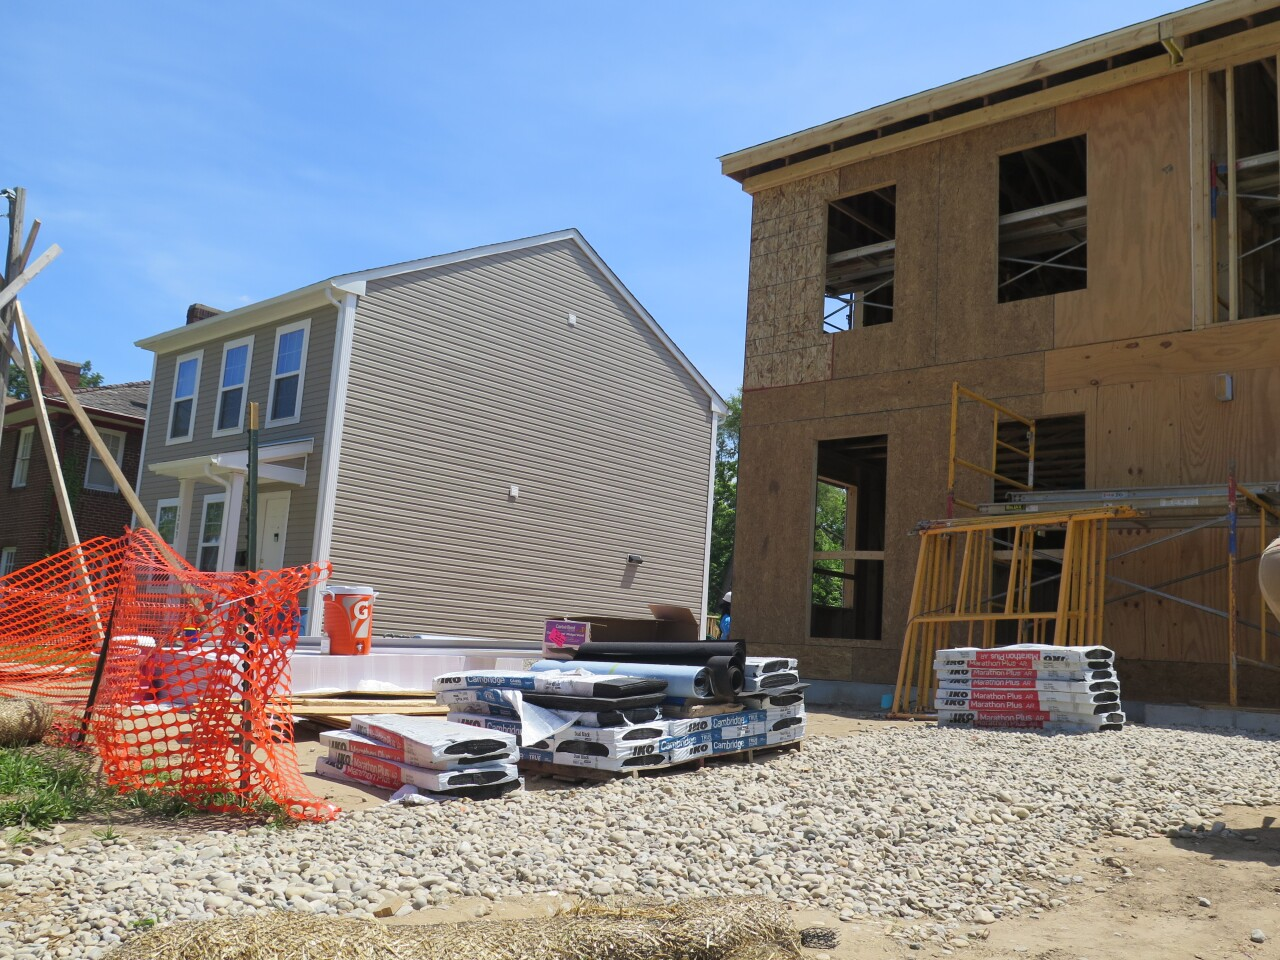 Allied Construction Industries and Habitat for Humanity of Greater Cincinnati teamed up to build the single-family home with tan siding, on the left, and the duplex under construction on the right.